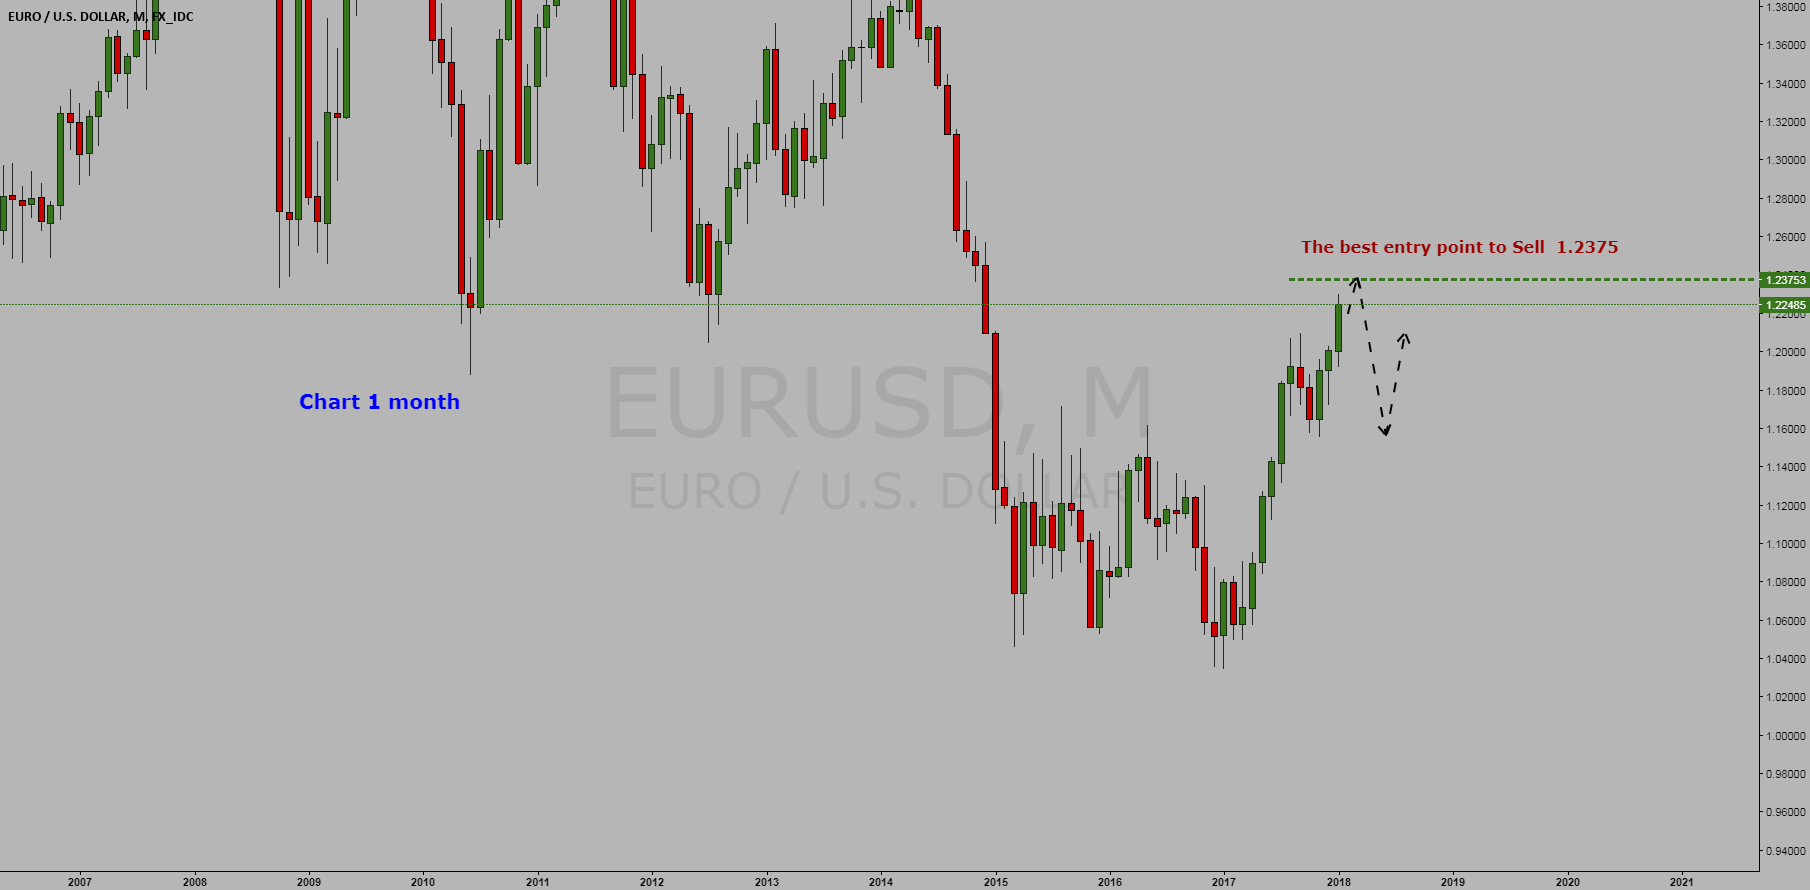 Currency Euro/ Dollar =  (Futures  6E) = Sell